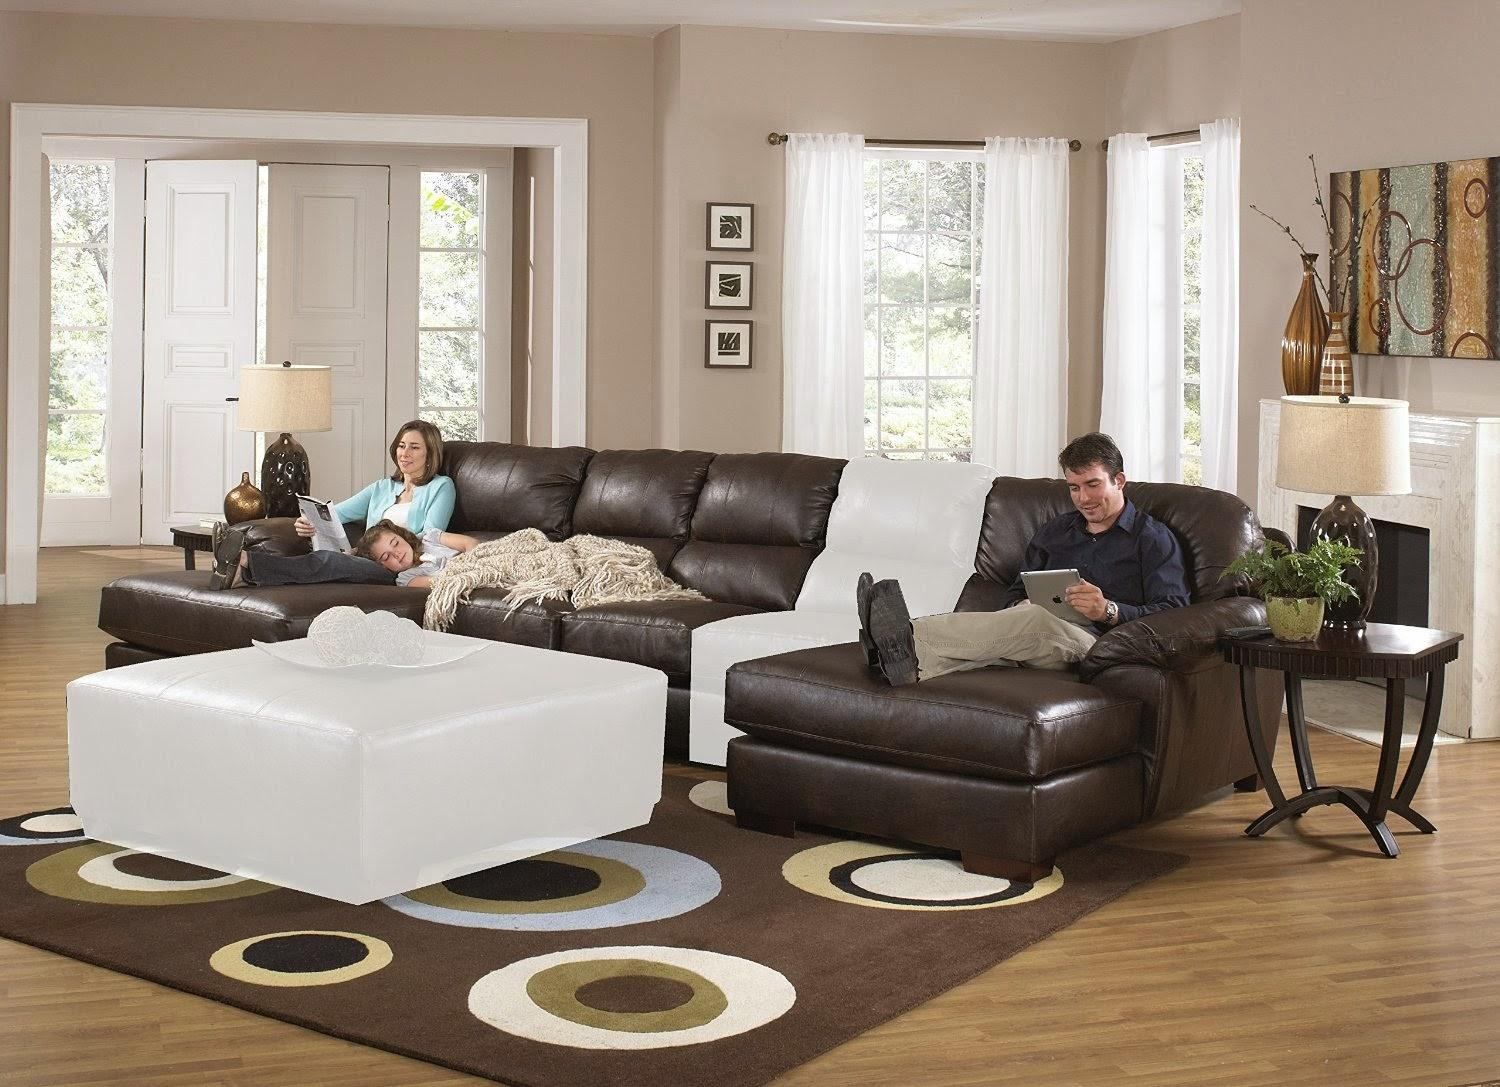 Furniture: Fantastic Sectional Couches With Recliners For Your Inside Sleeper Recliner Sectional (View 3 of 20)